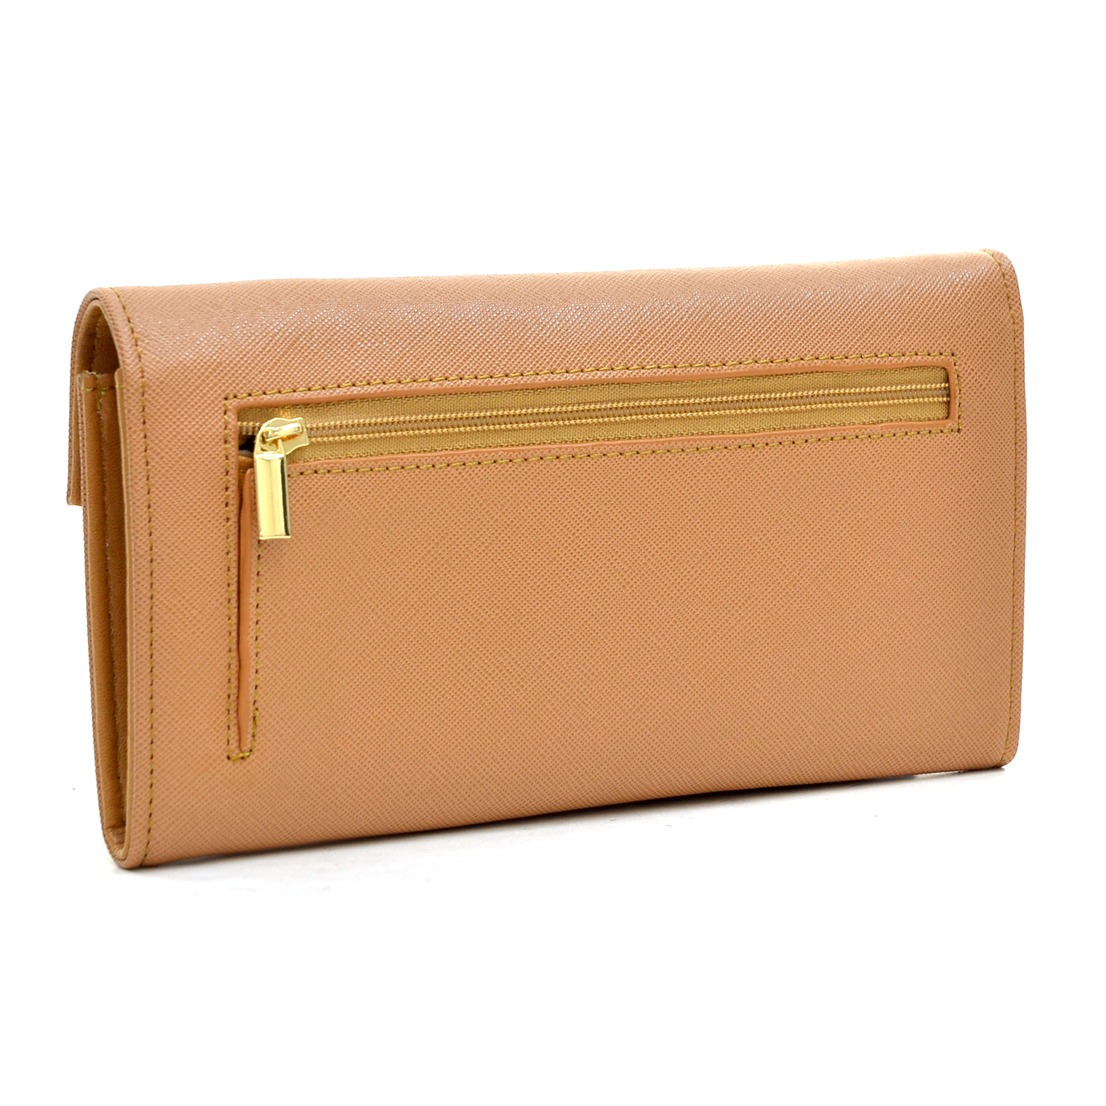 Gold-Tone Saffiano Faux Leather Wallet